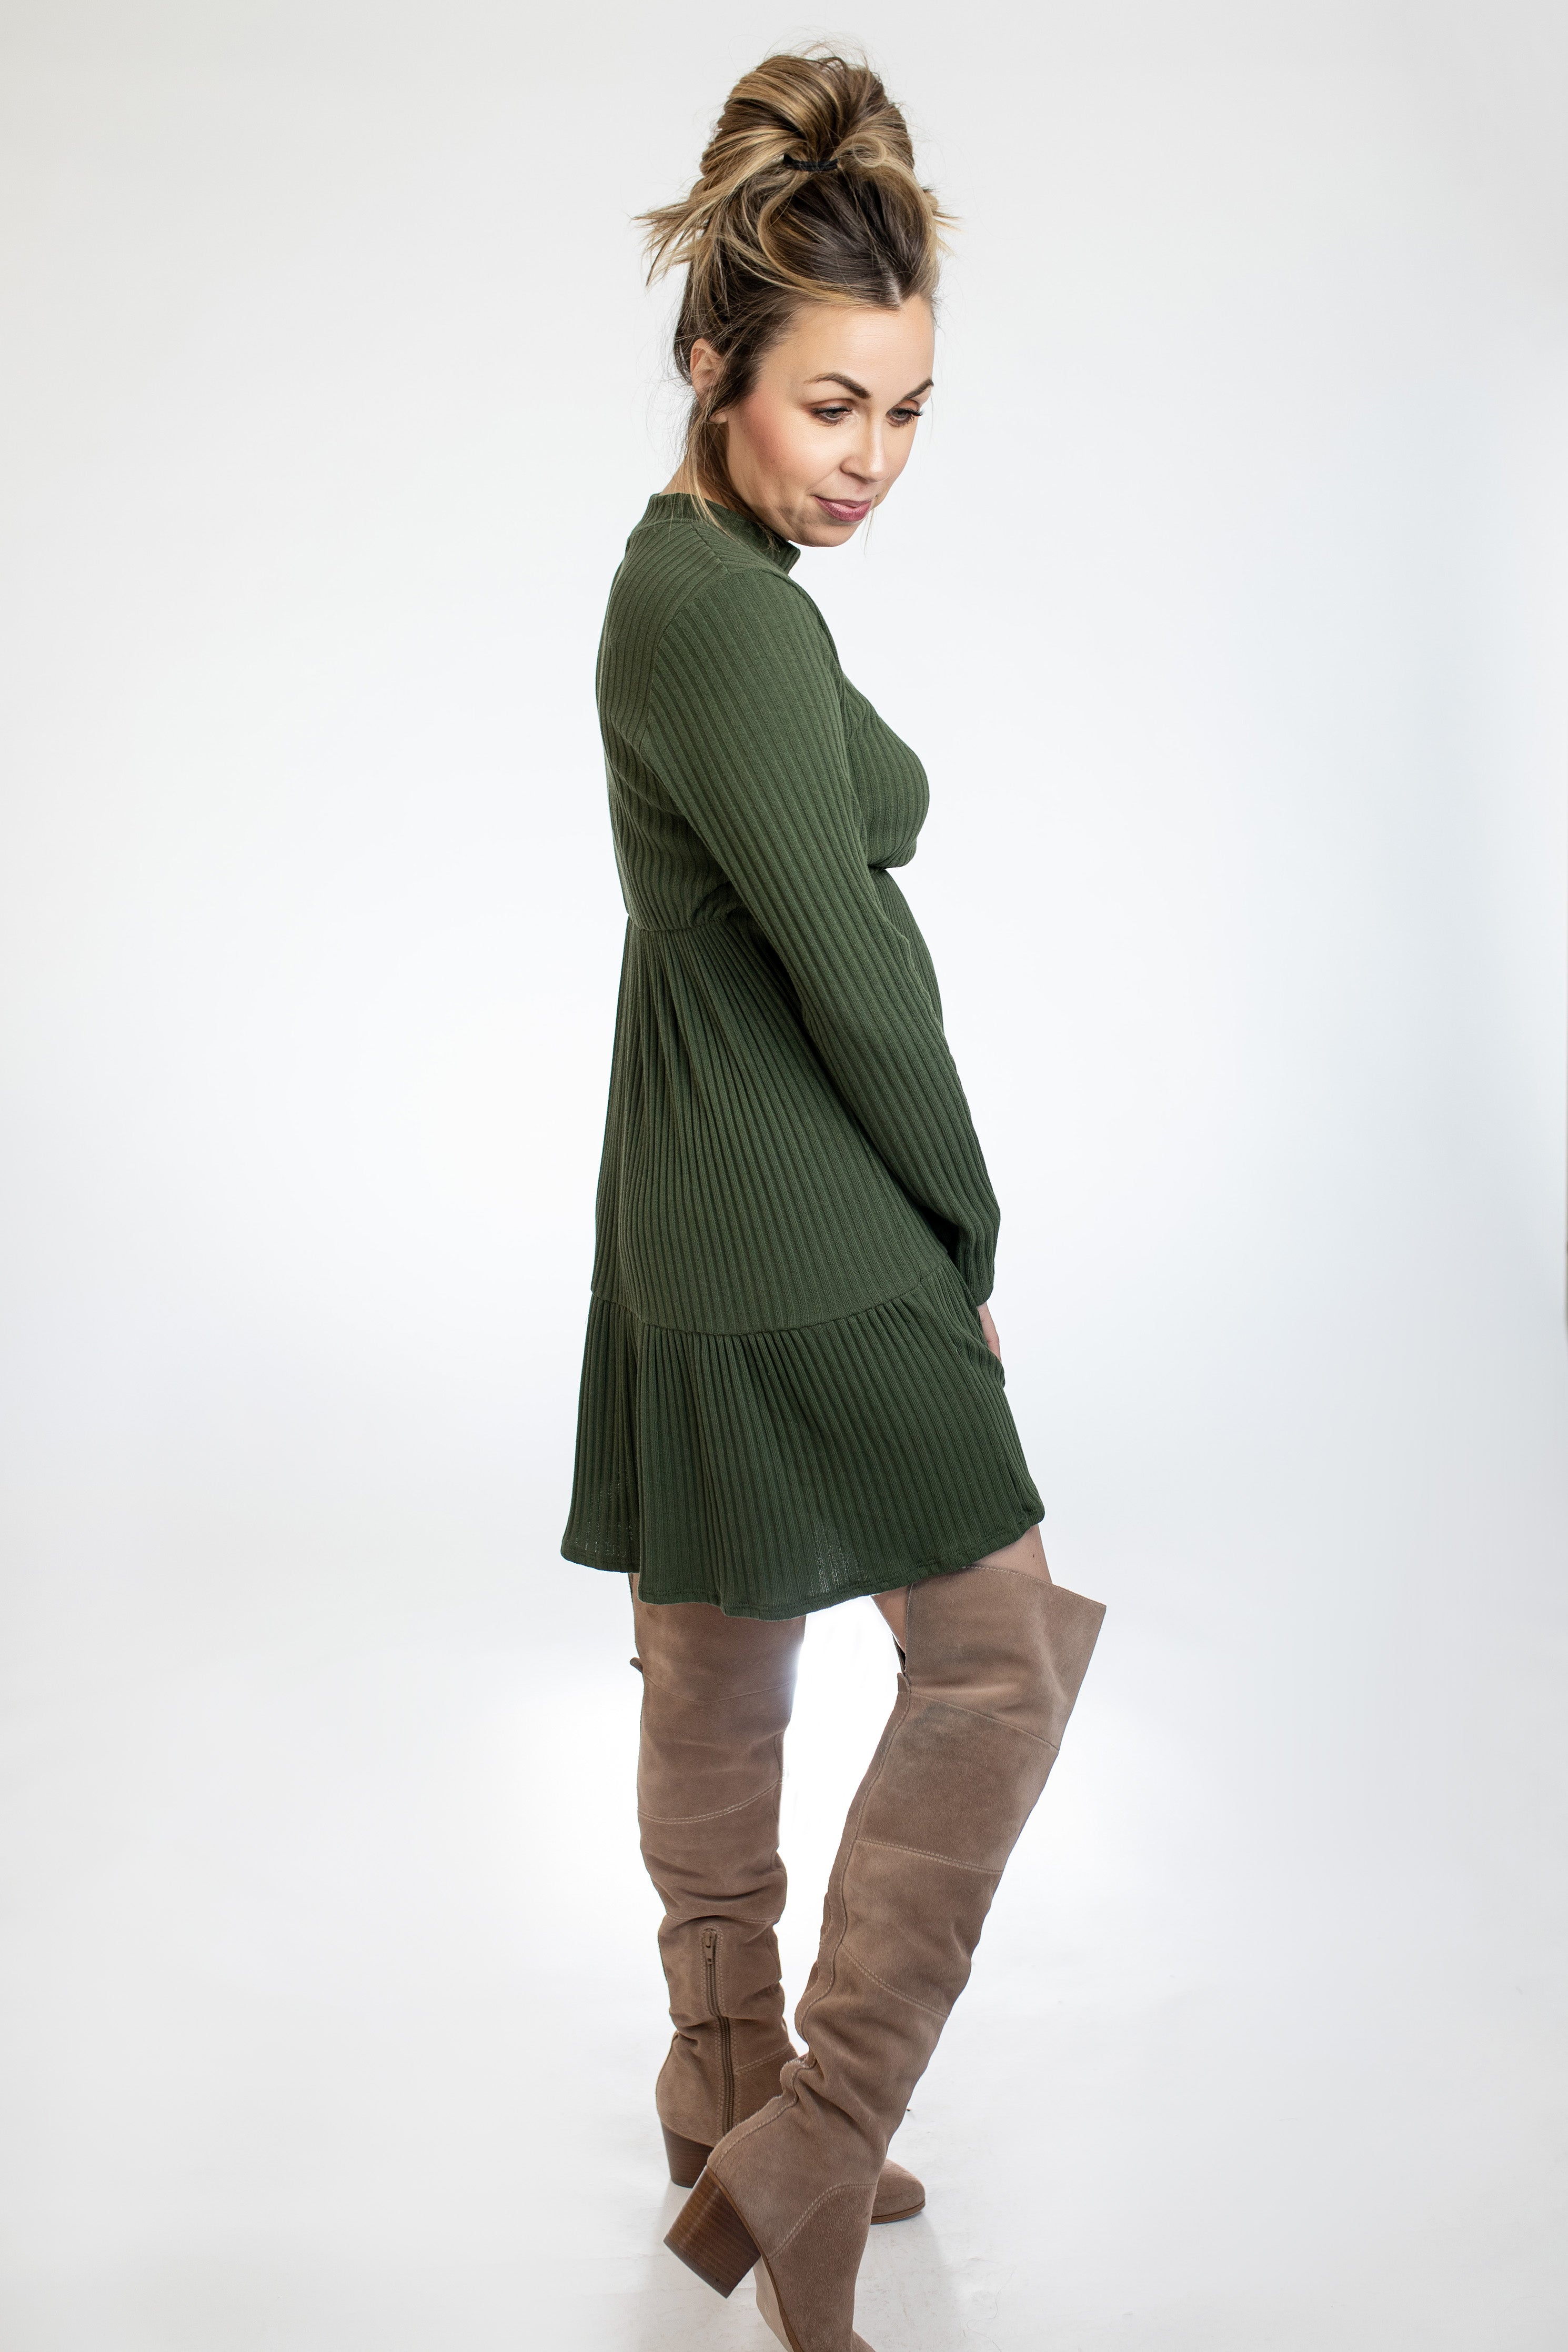 Ribbed Knit Olive Dress